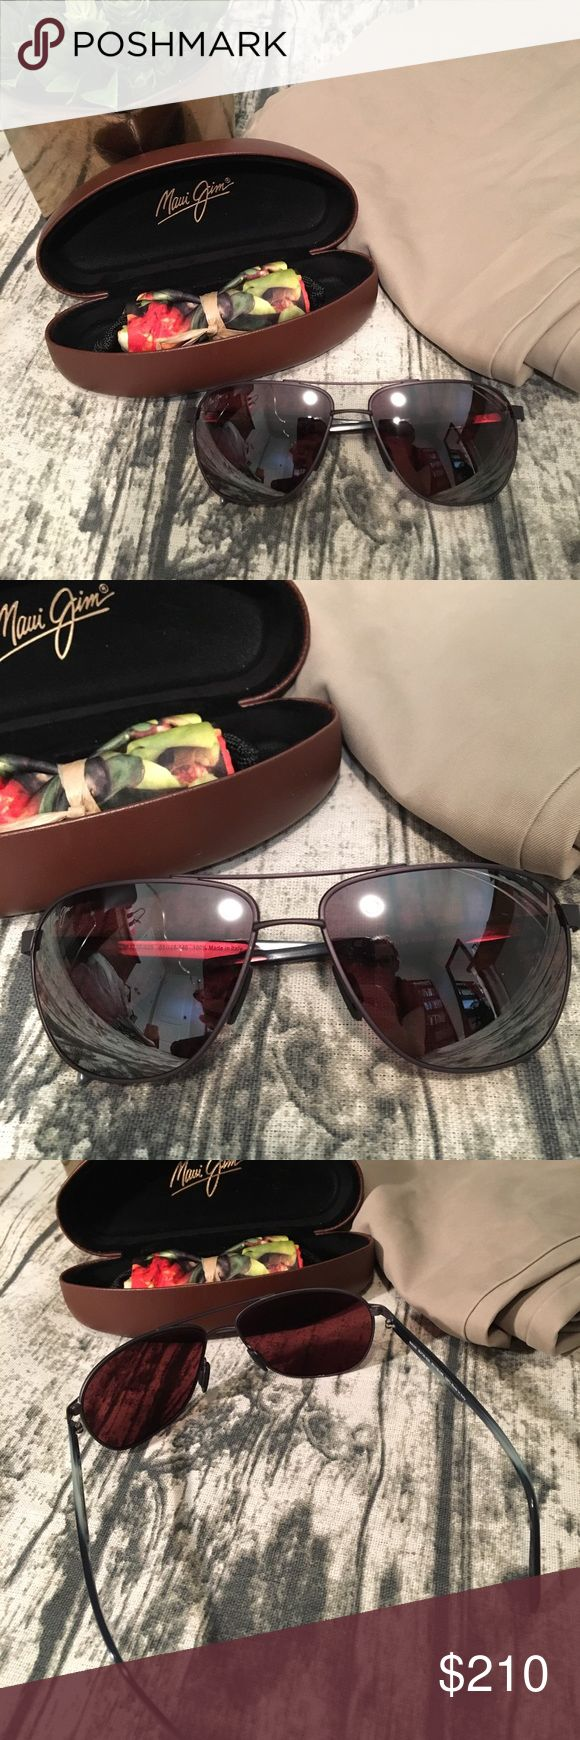 Maui Jim Men's Polarized Sunglasses 🕶 Brand new Maui Jim men's polarized sunglasses. Black and matte gray sunglasses. These sunglasses include the hard case, and tropical print lense cleaning cloth. Great pair of sunglasses for all year round! 🕶 Maui Jim Accessories Sunglasses